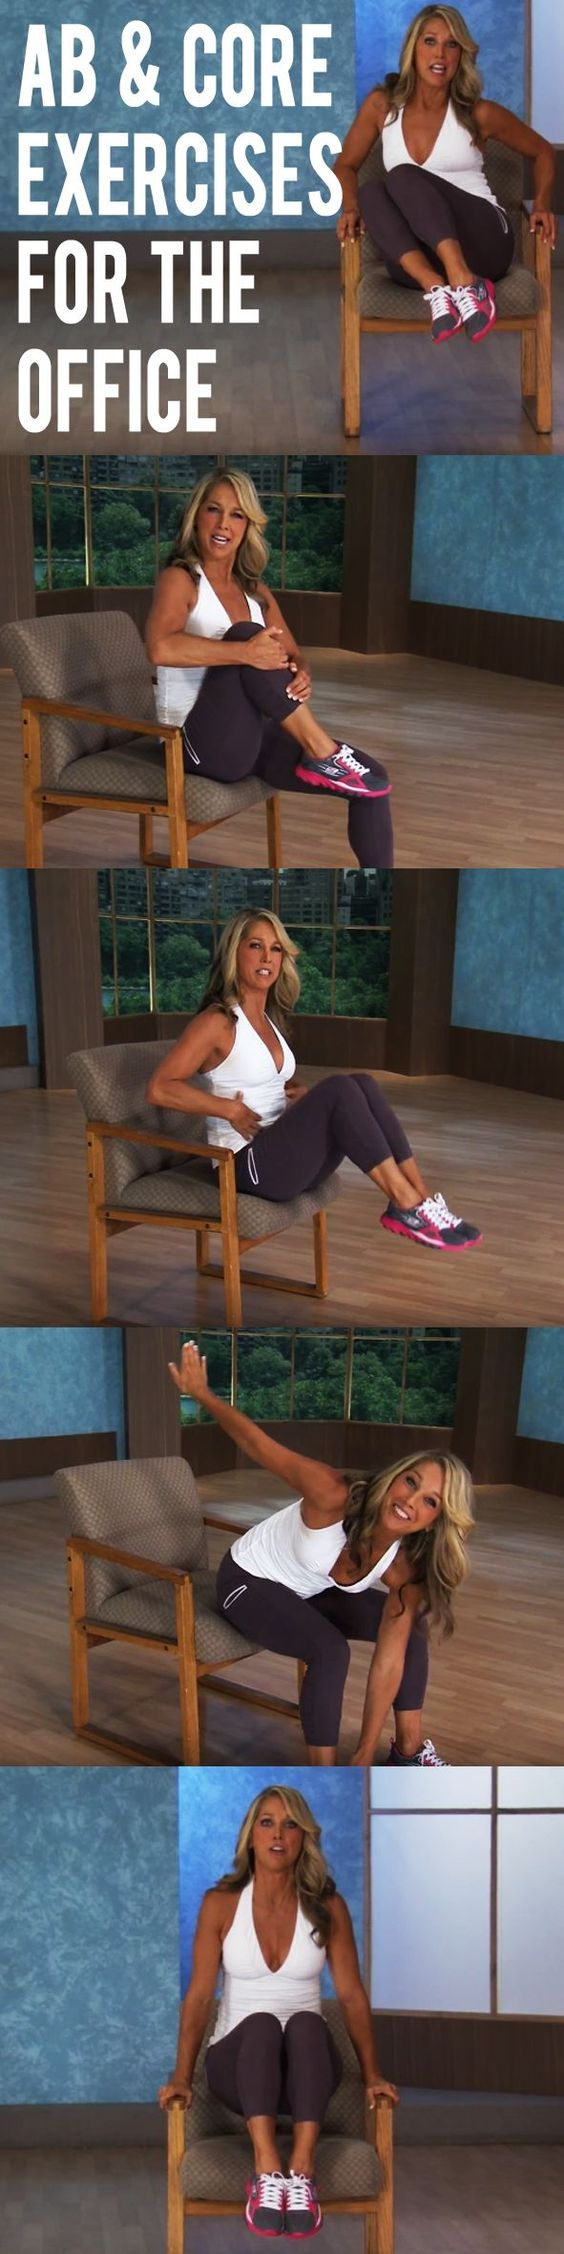 Do you want to save time by getting your workout done while in the office? Spend a few minutes doing these simple moves to workout your abs! Best Ab Workouts